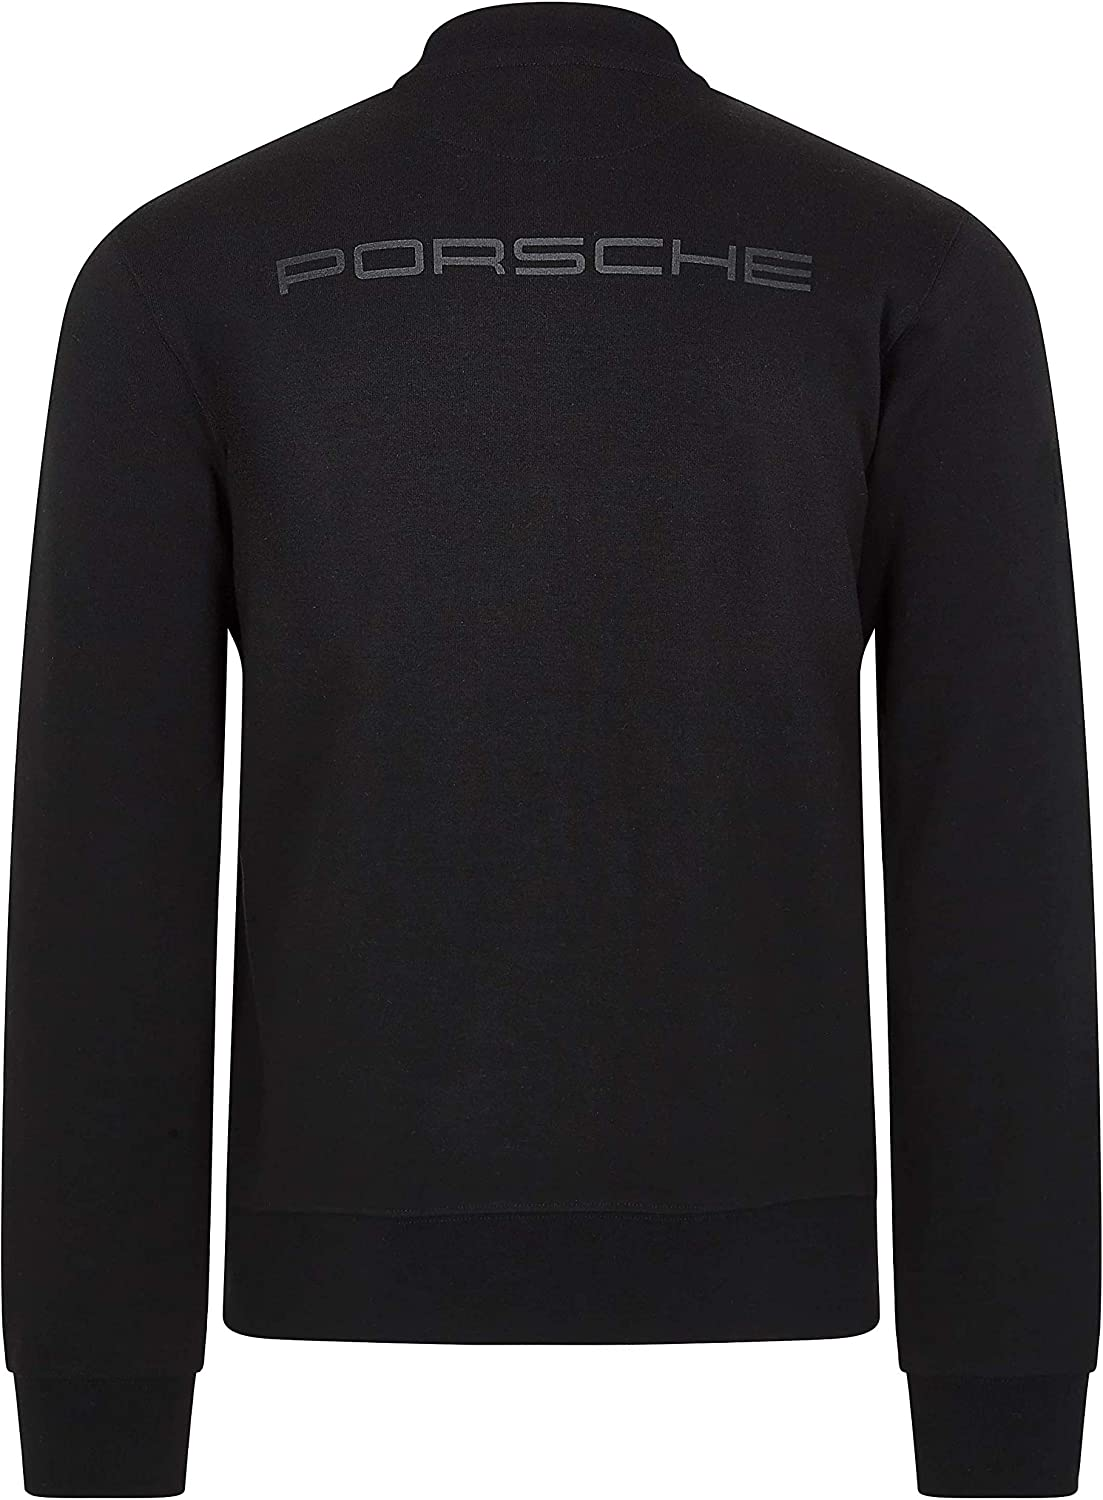 Porsche Motorsport Mens Black Zip Sweatshirt